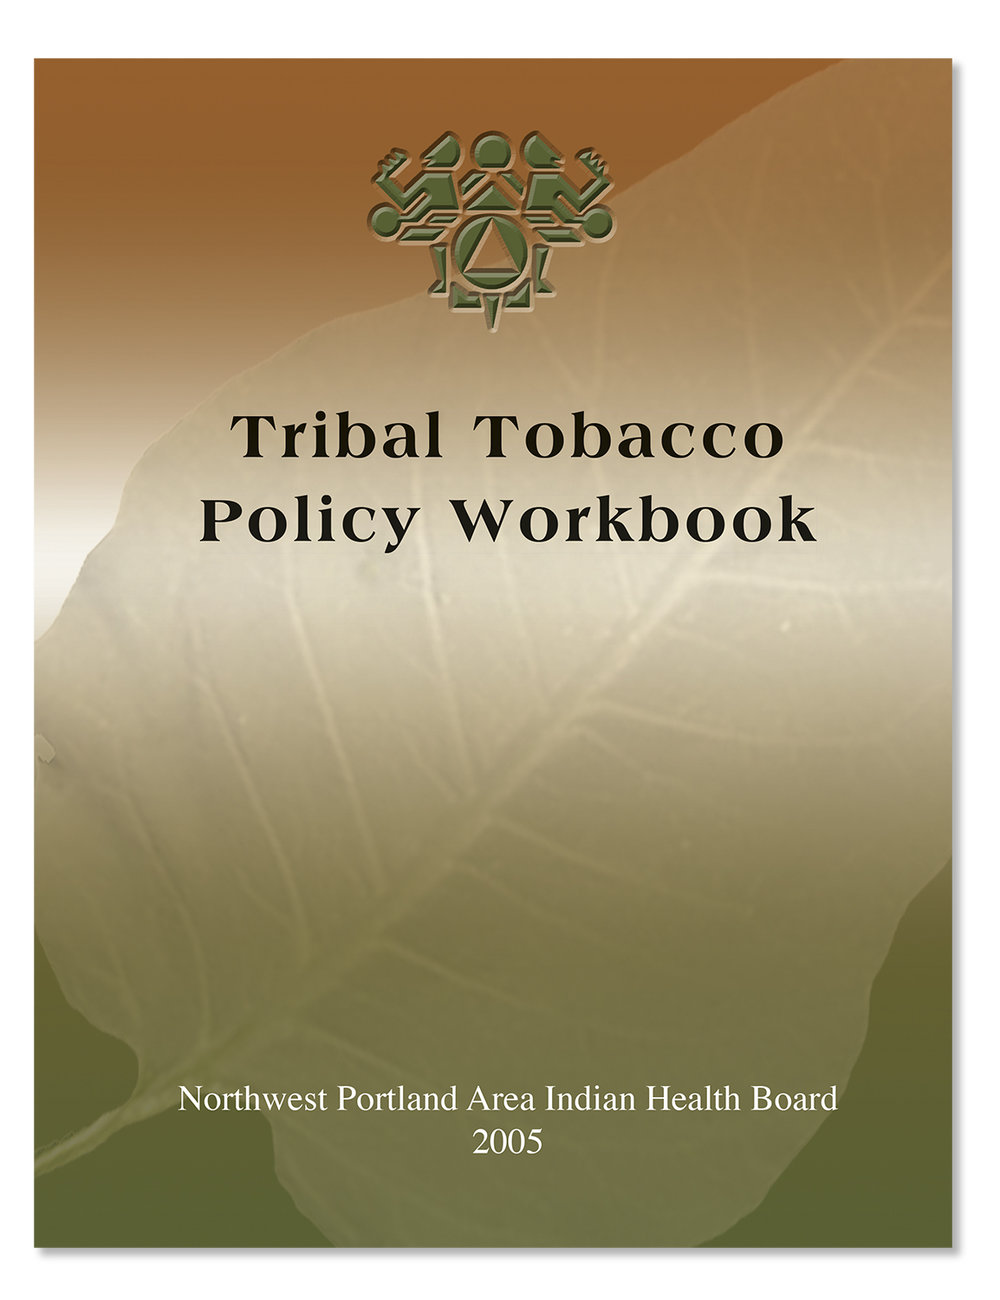 NPAIHB Tobacco Policy Cover